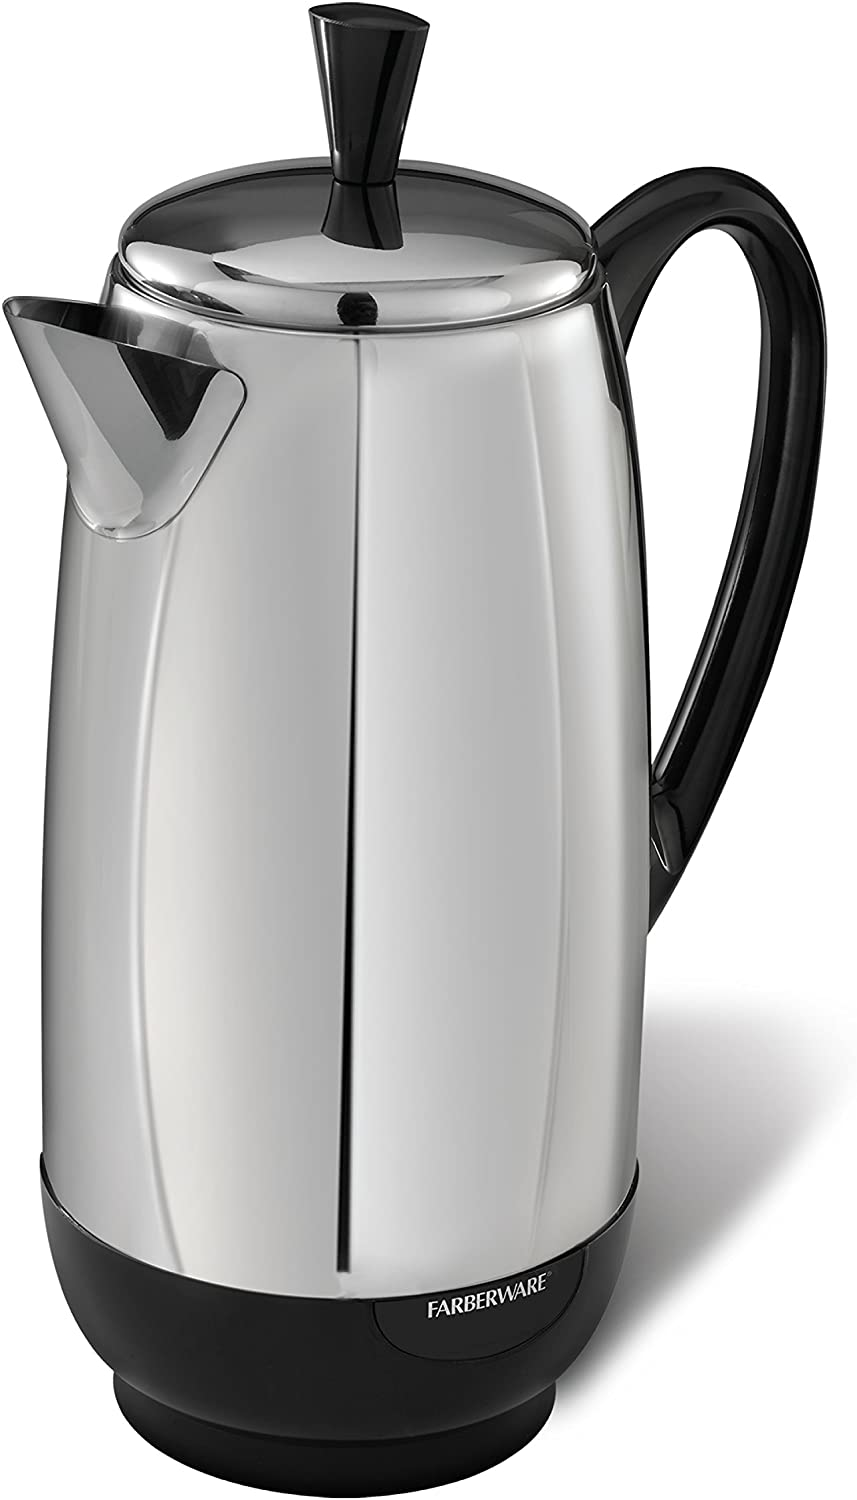 Farberware FCP412 Stainless Steel Coffee Percolator, 12-Cup